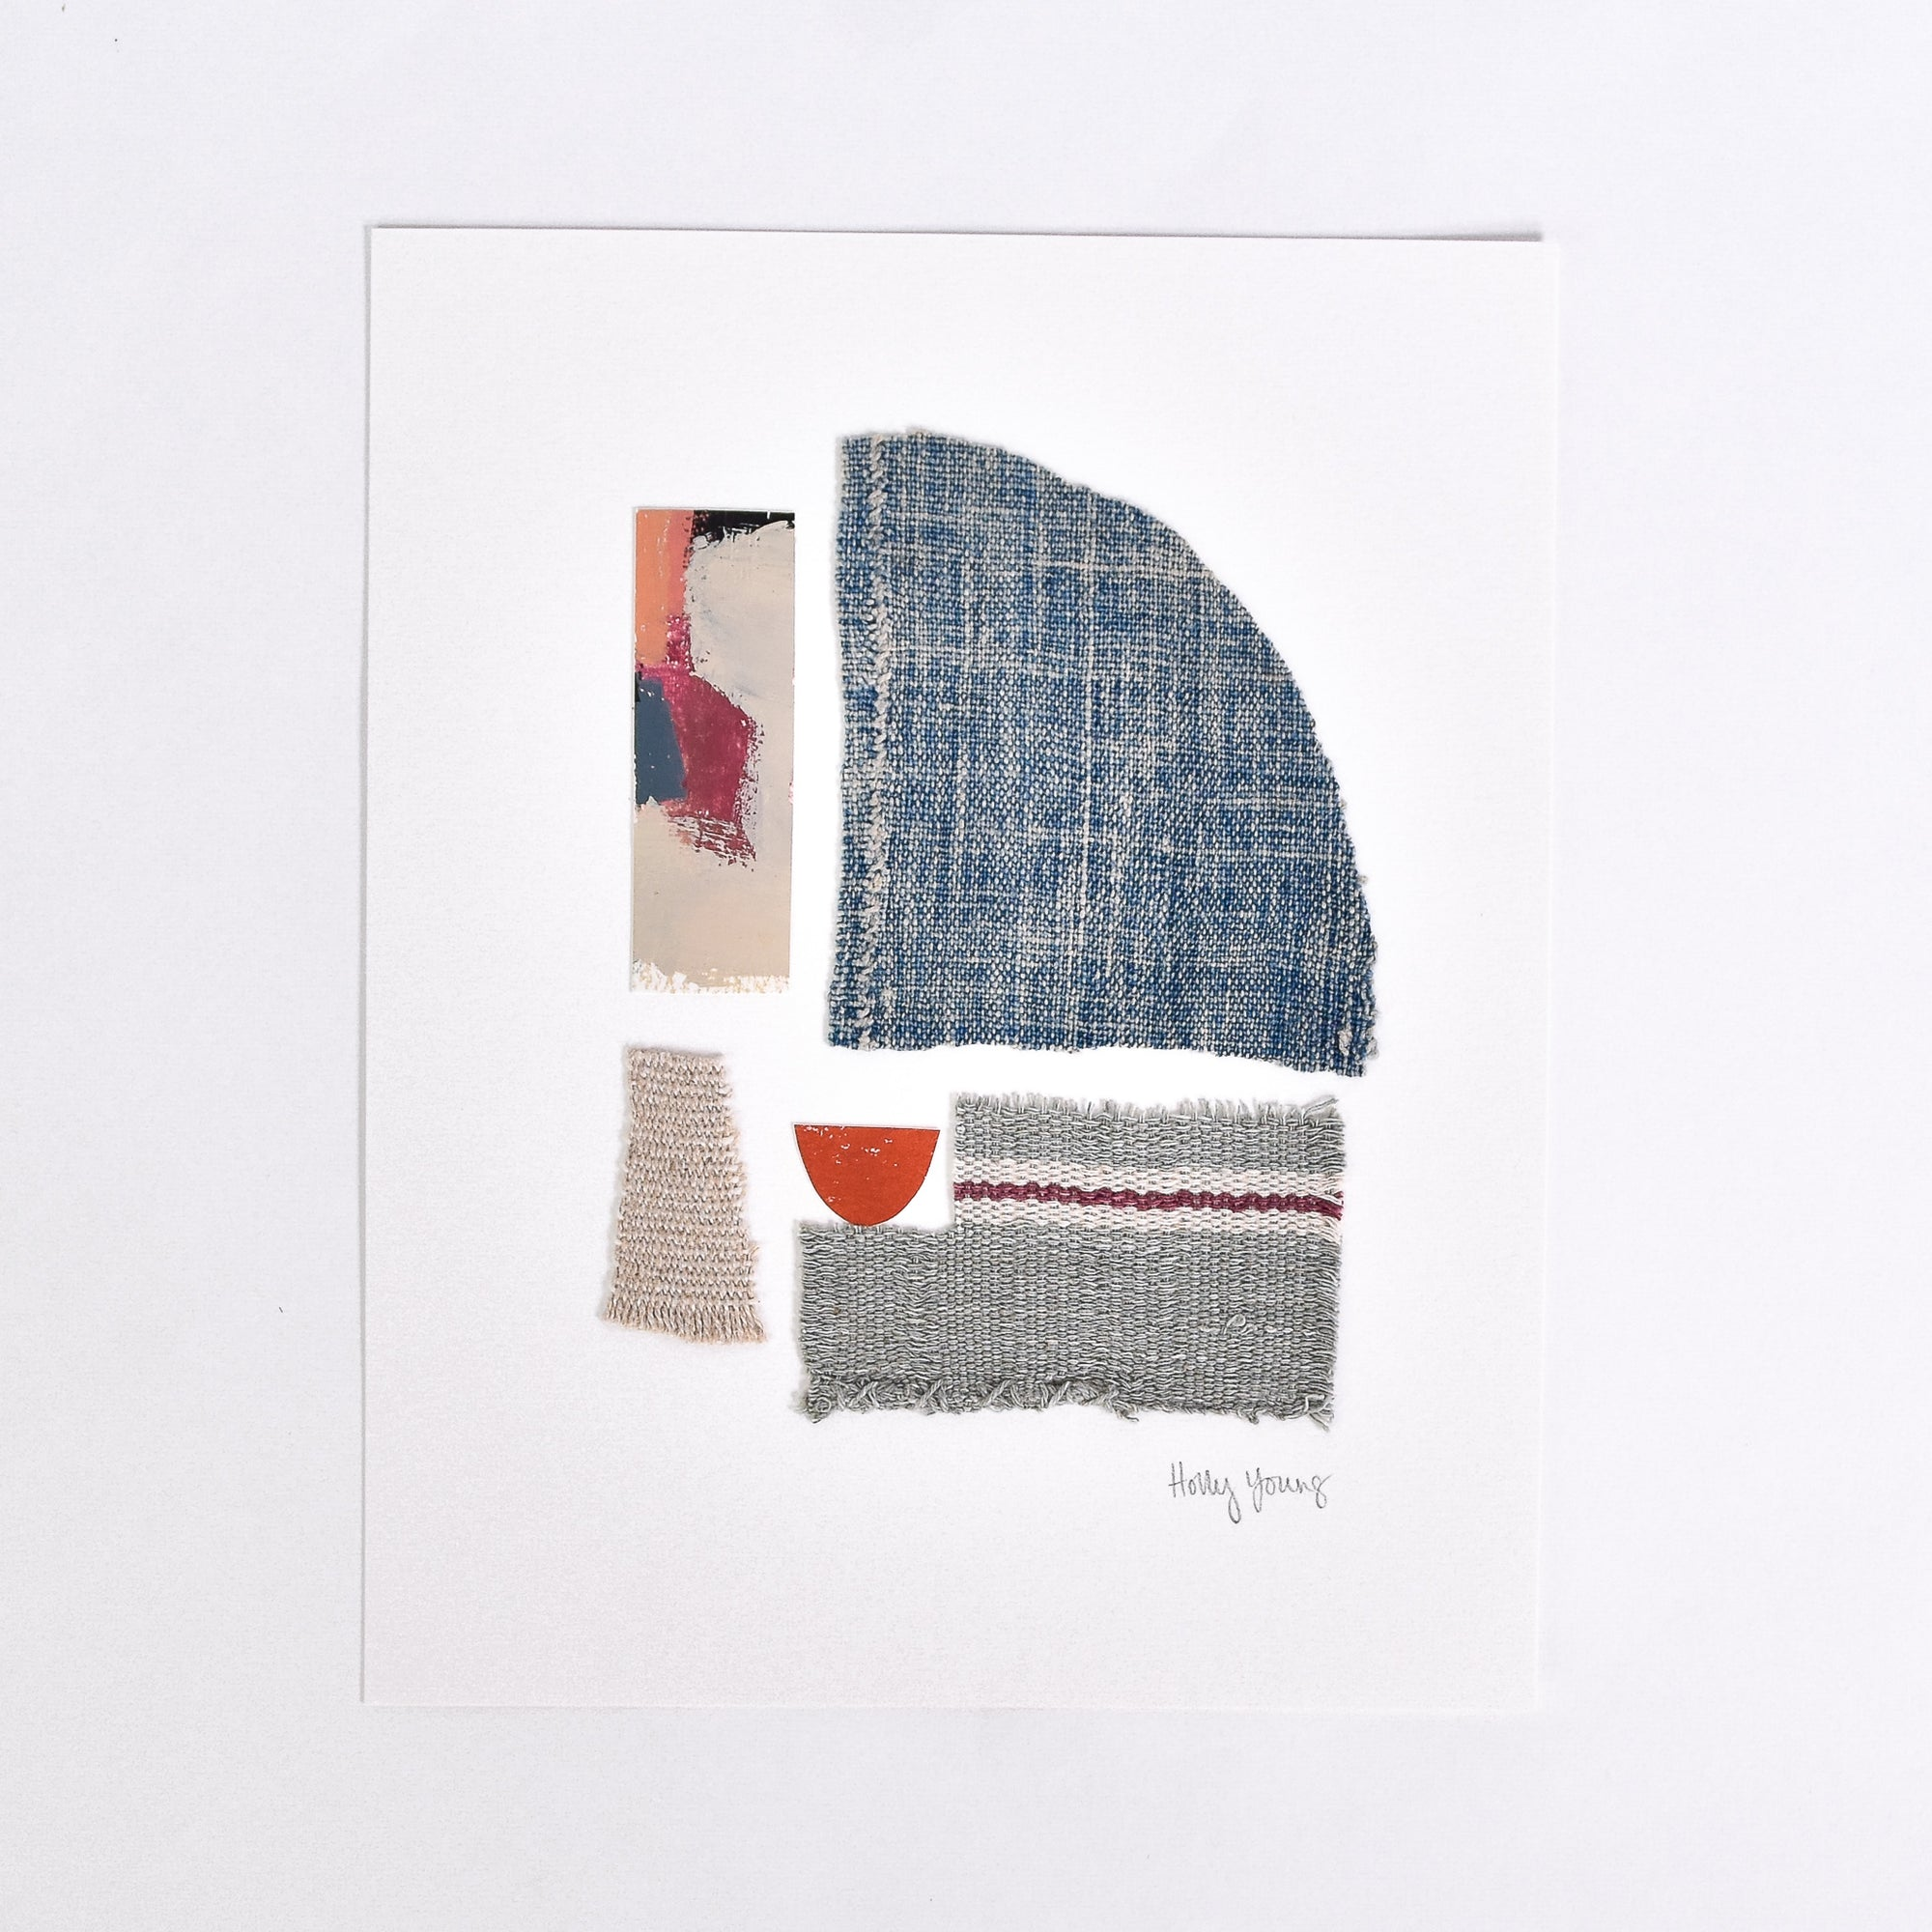 """Hometown"" by Holly Young - Rug & Weave"